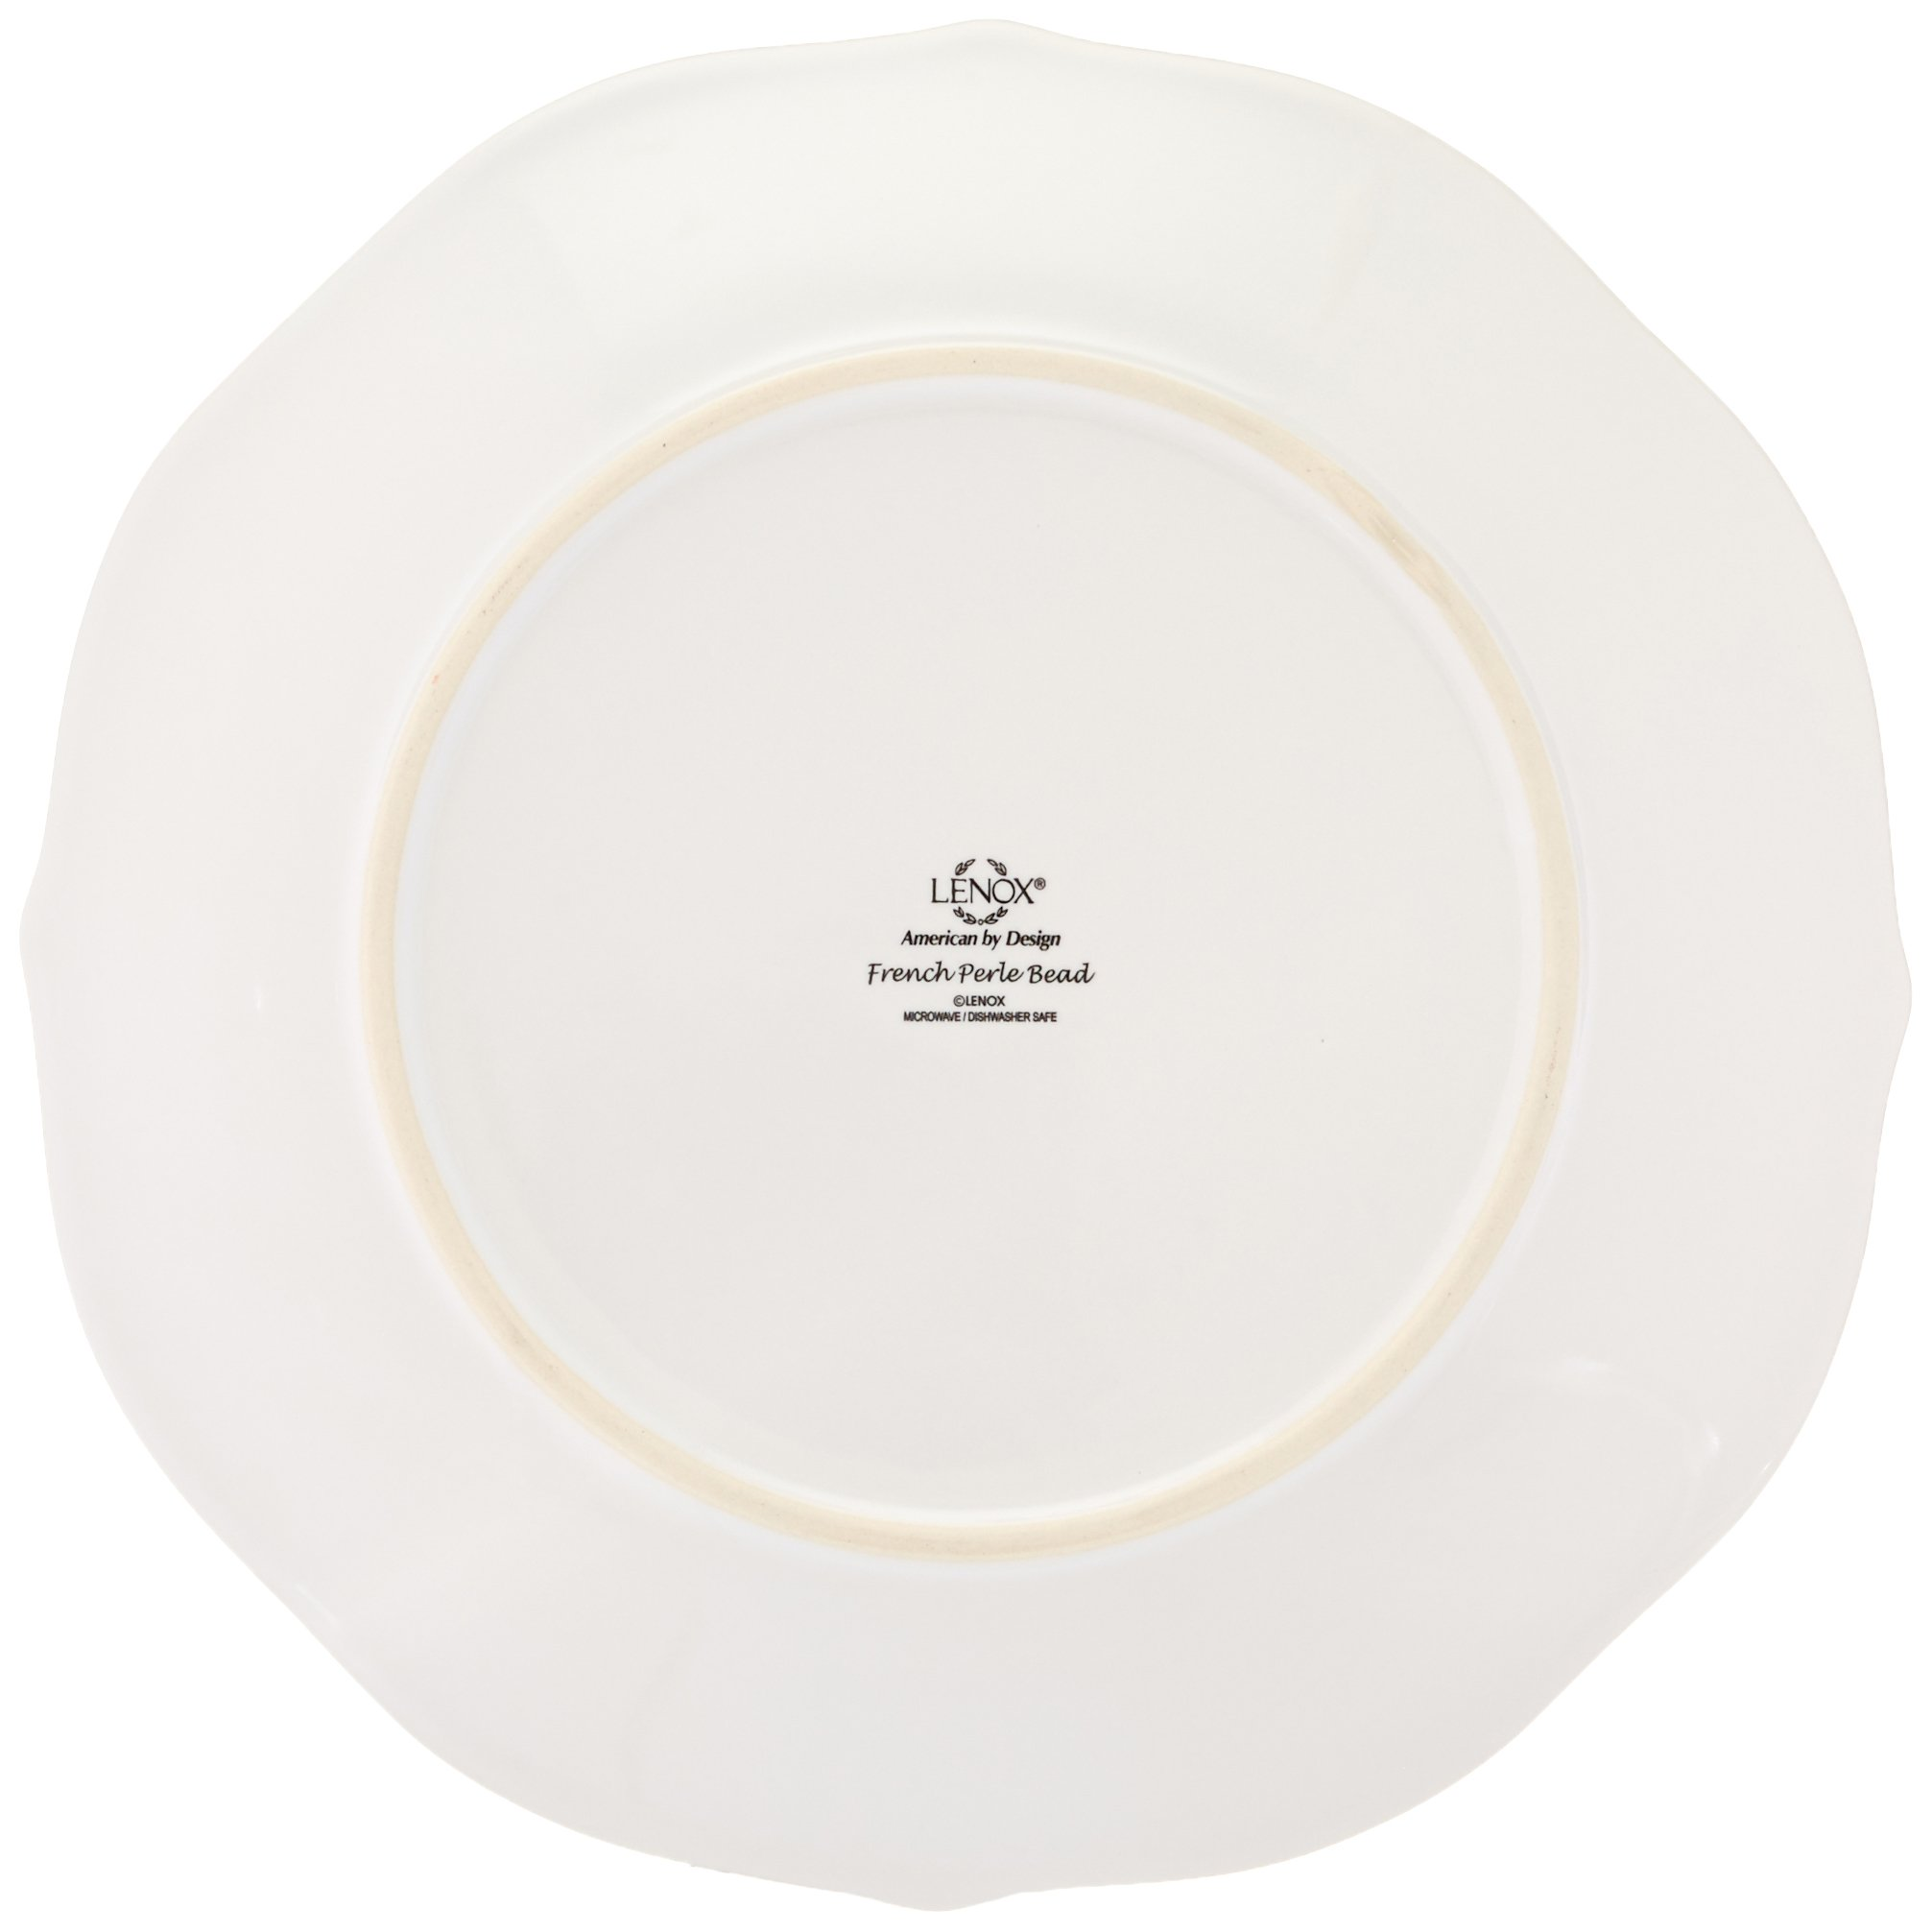 Lenox 4-Piece French Perle Bead Dinner Set, White by Lenox (Image #7)